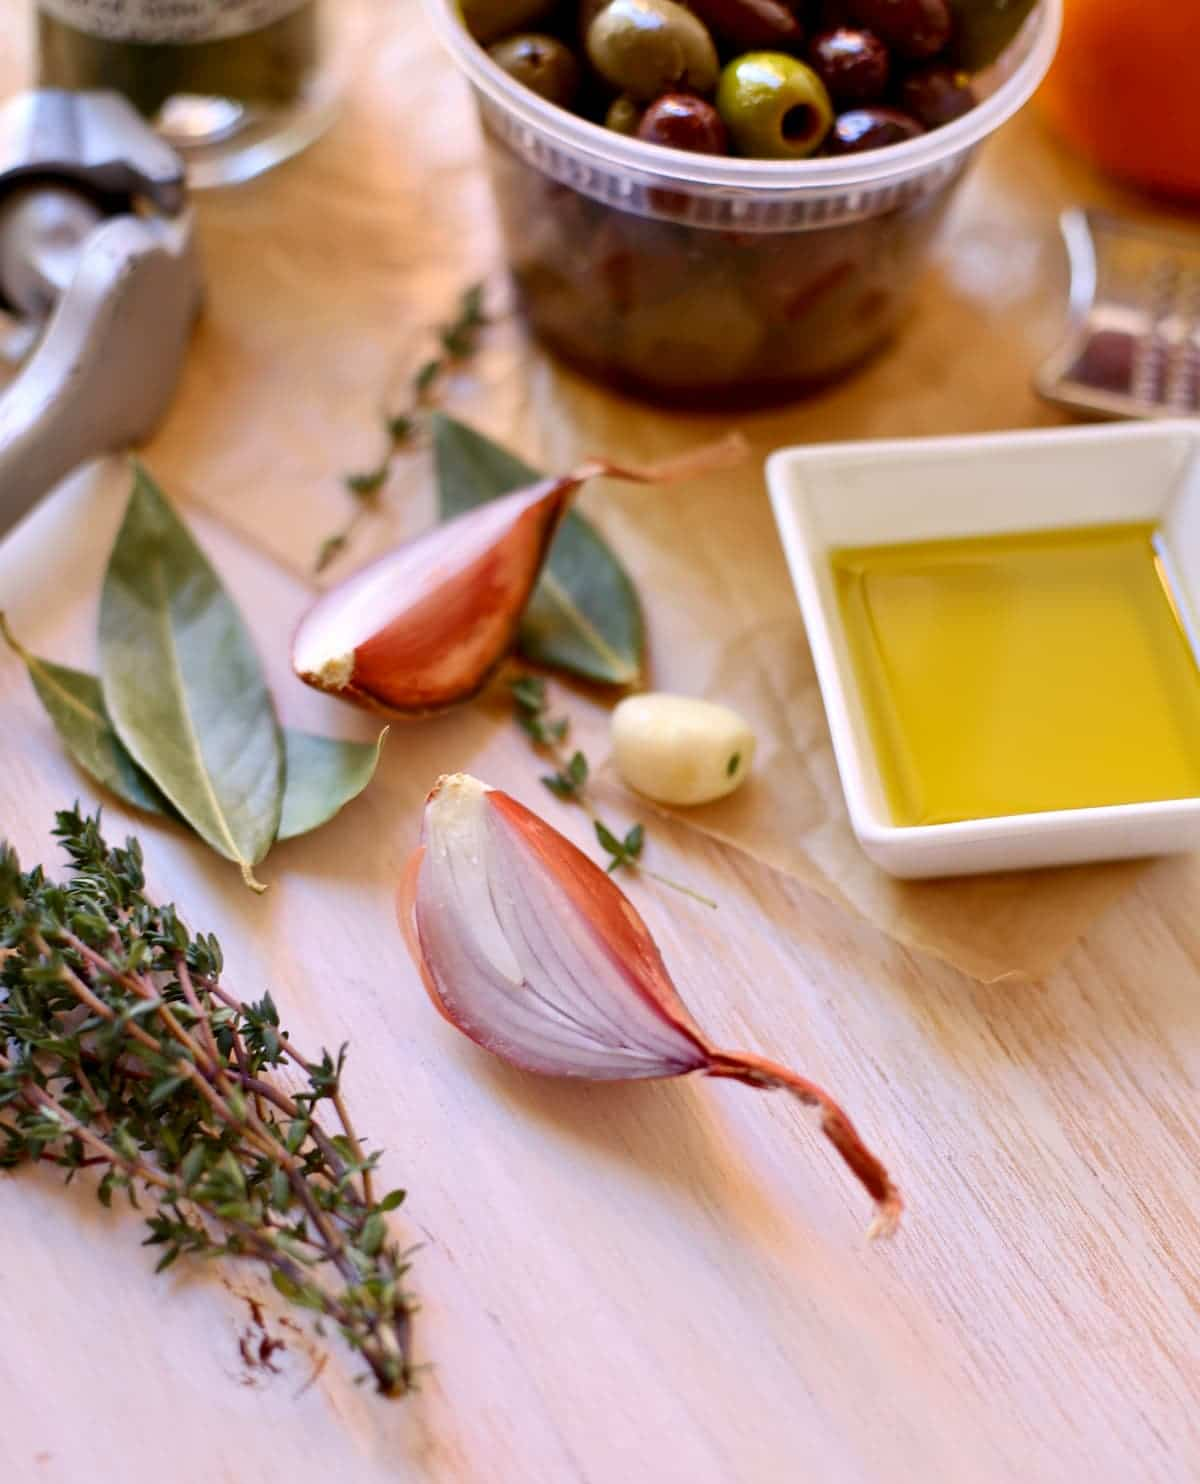 a shallot and other ingredients and herbs on a table